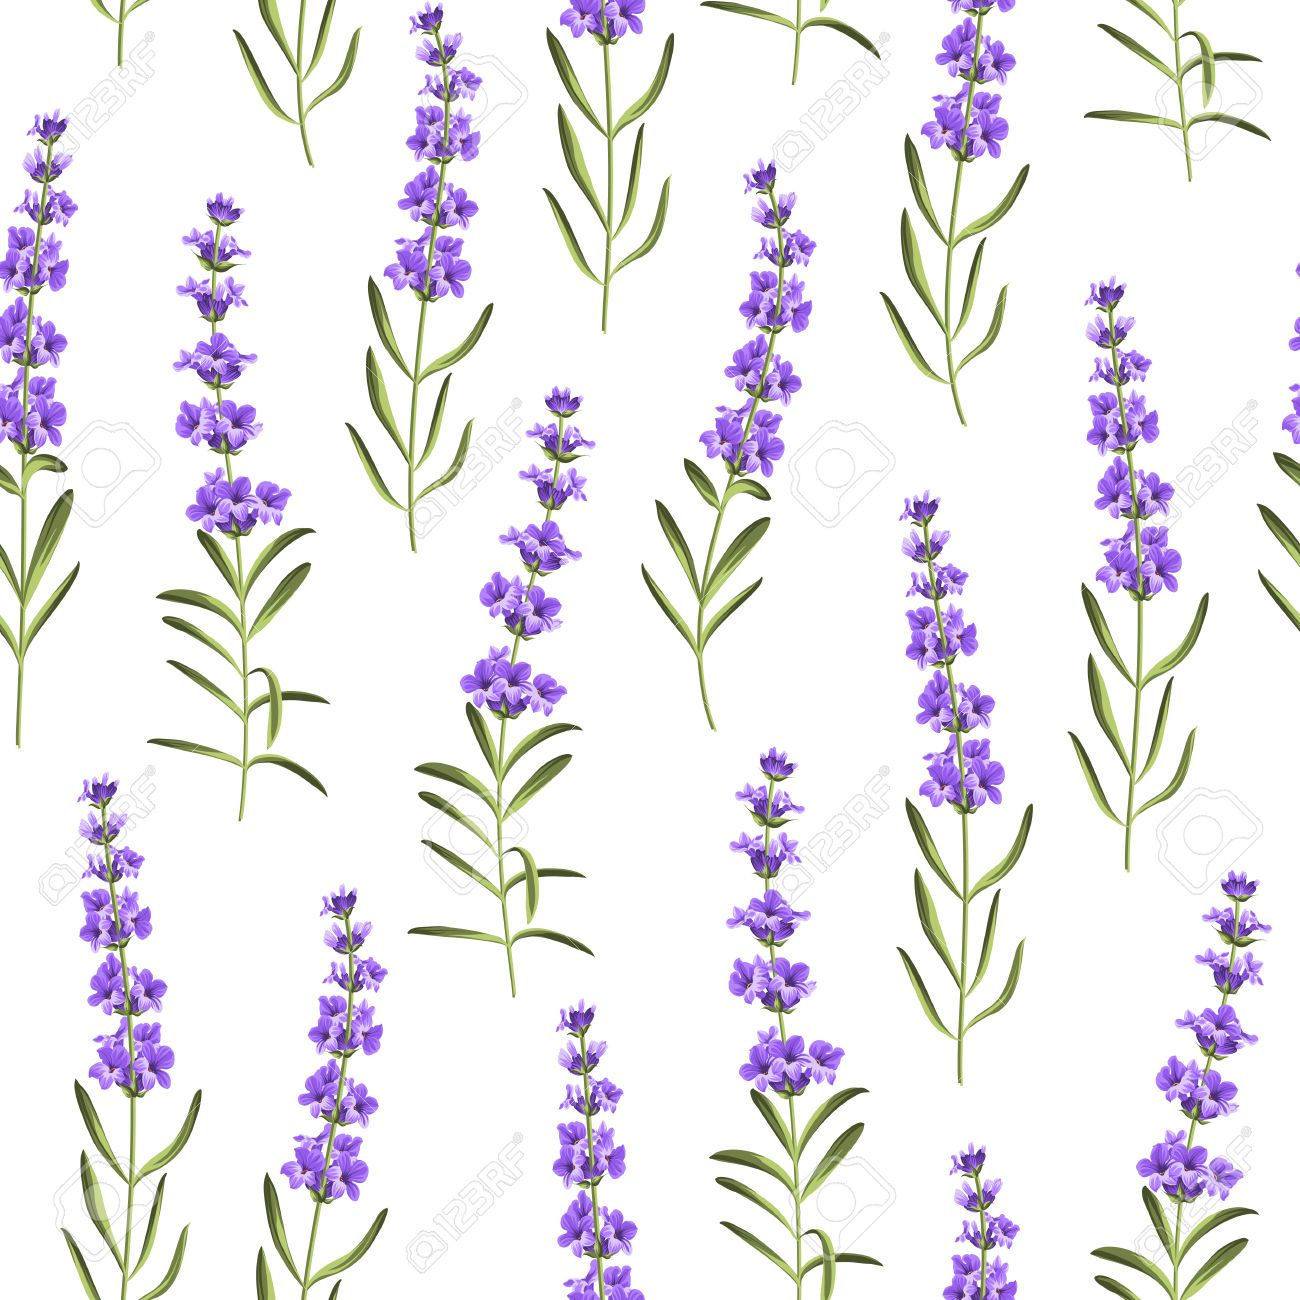 seamless pattern of lavender flowers on a white background